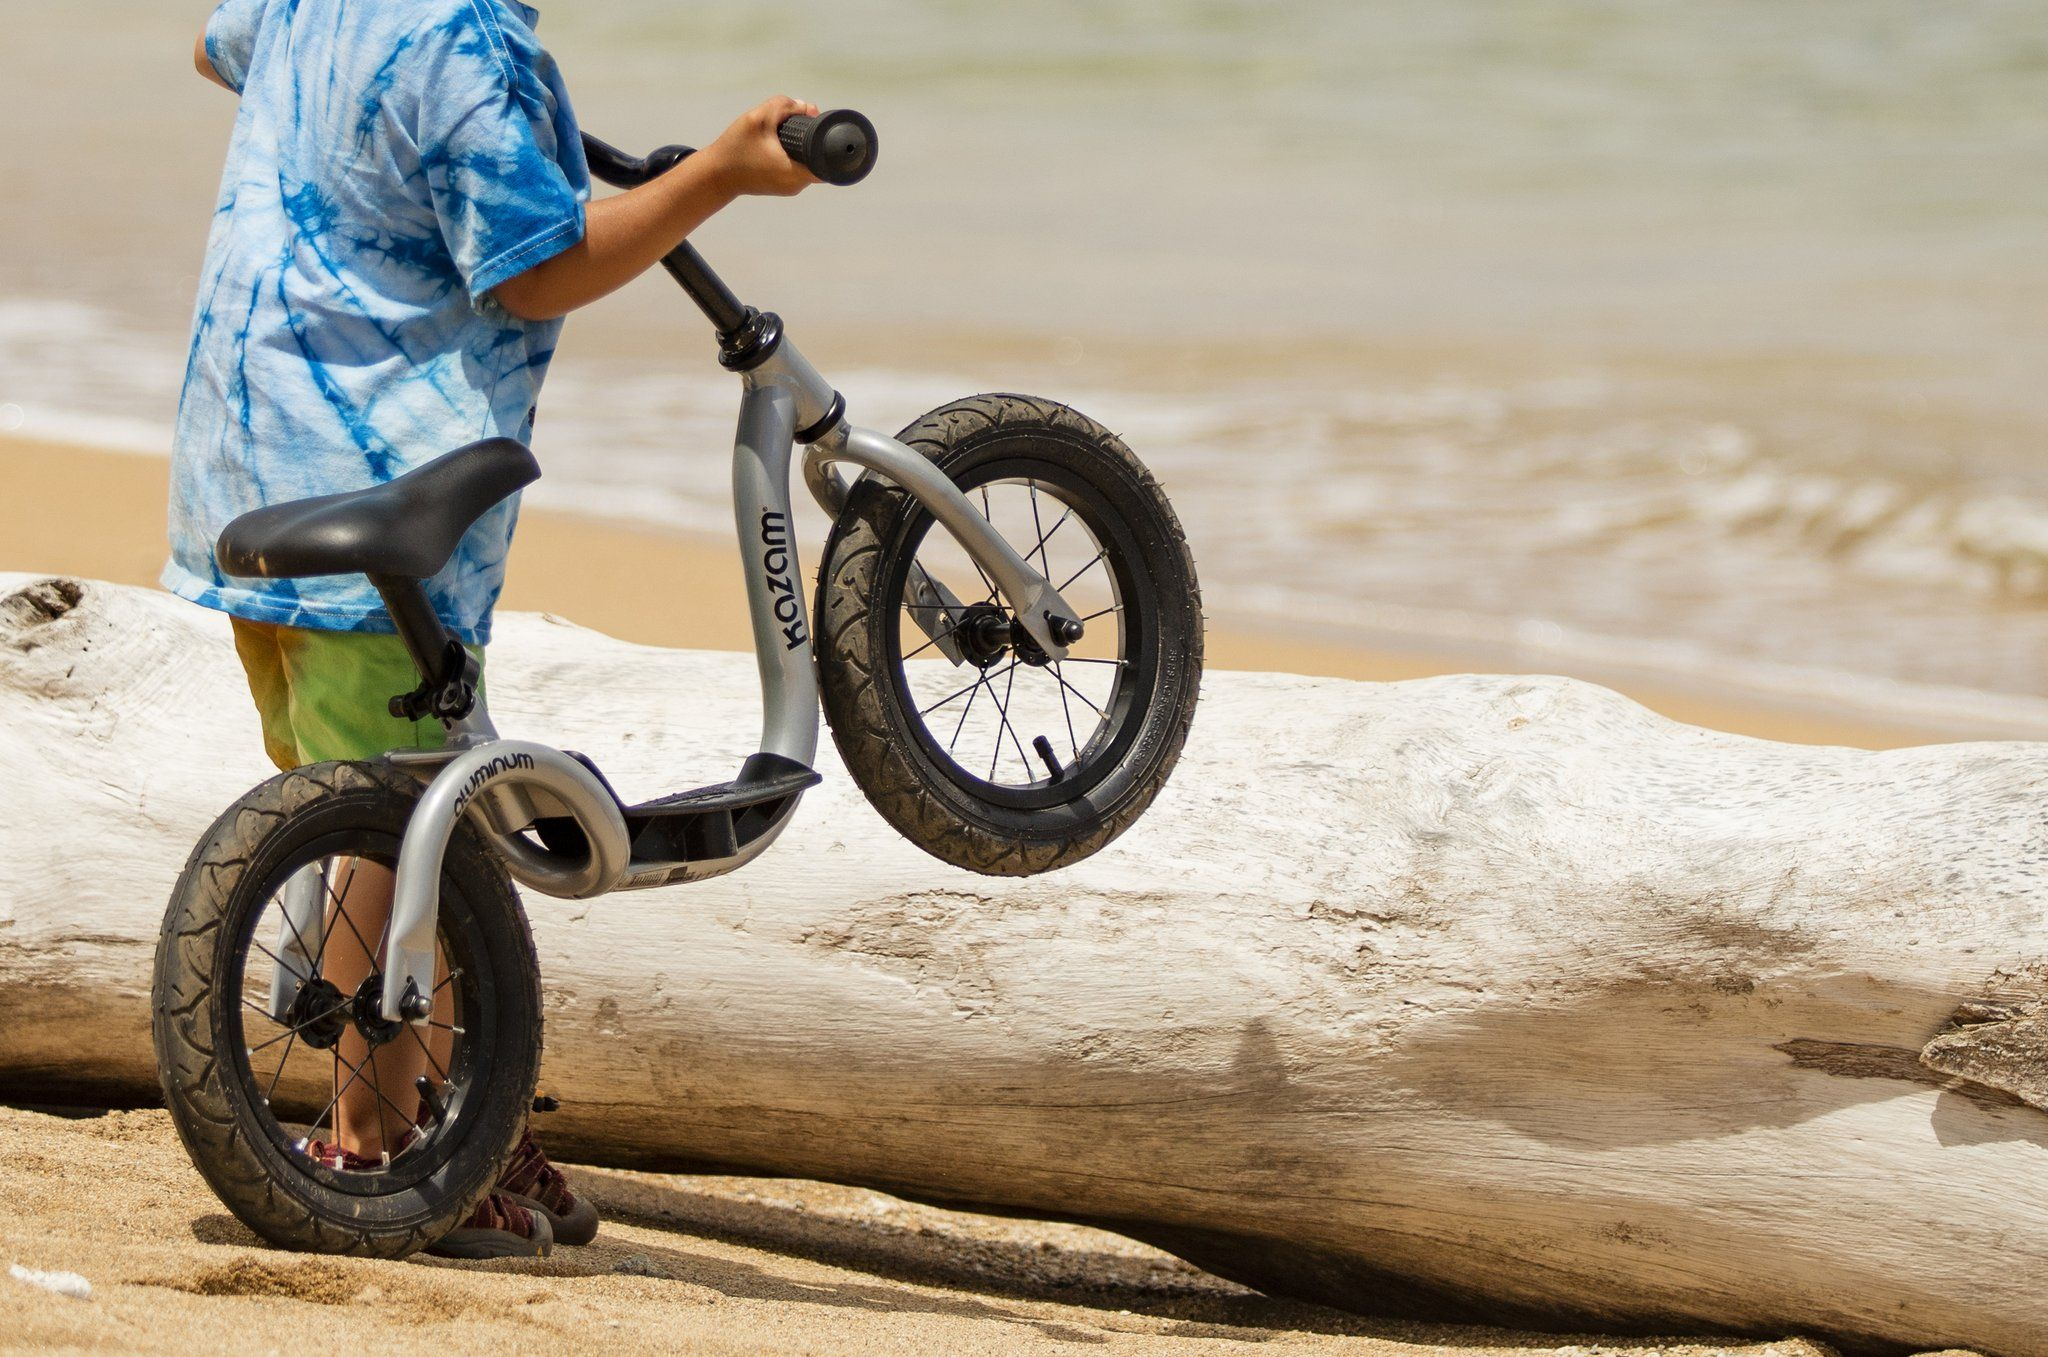 Teach Your Child S How To Ride A Balance Bike With The Kazam